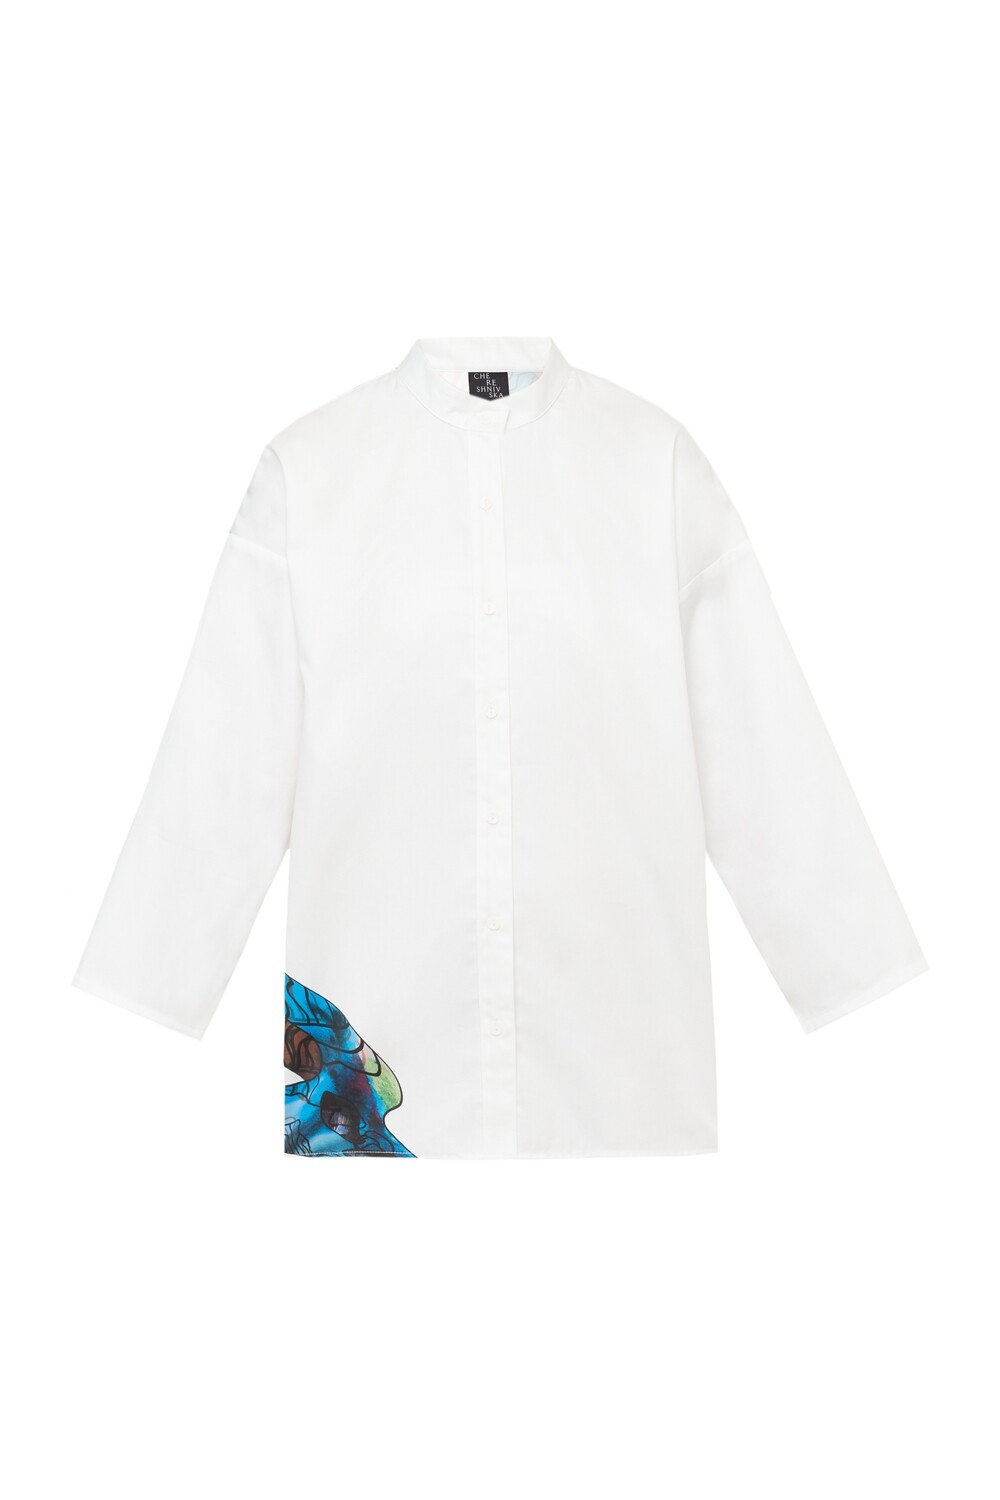 White shirt with printed back